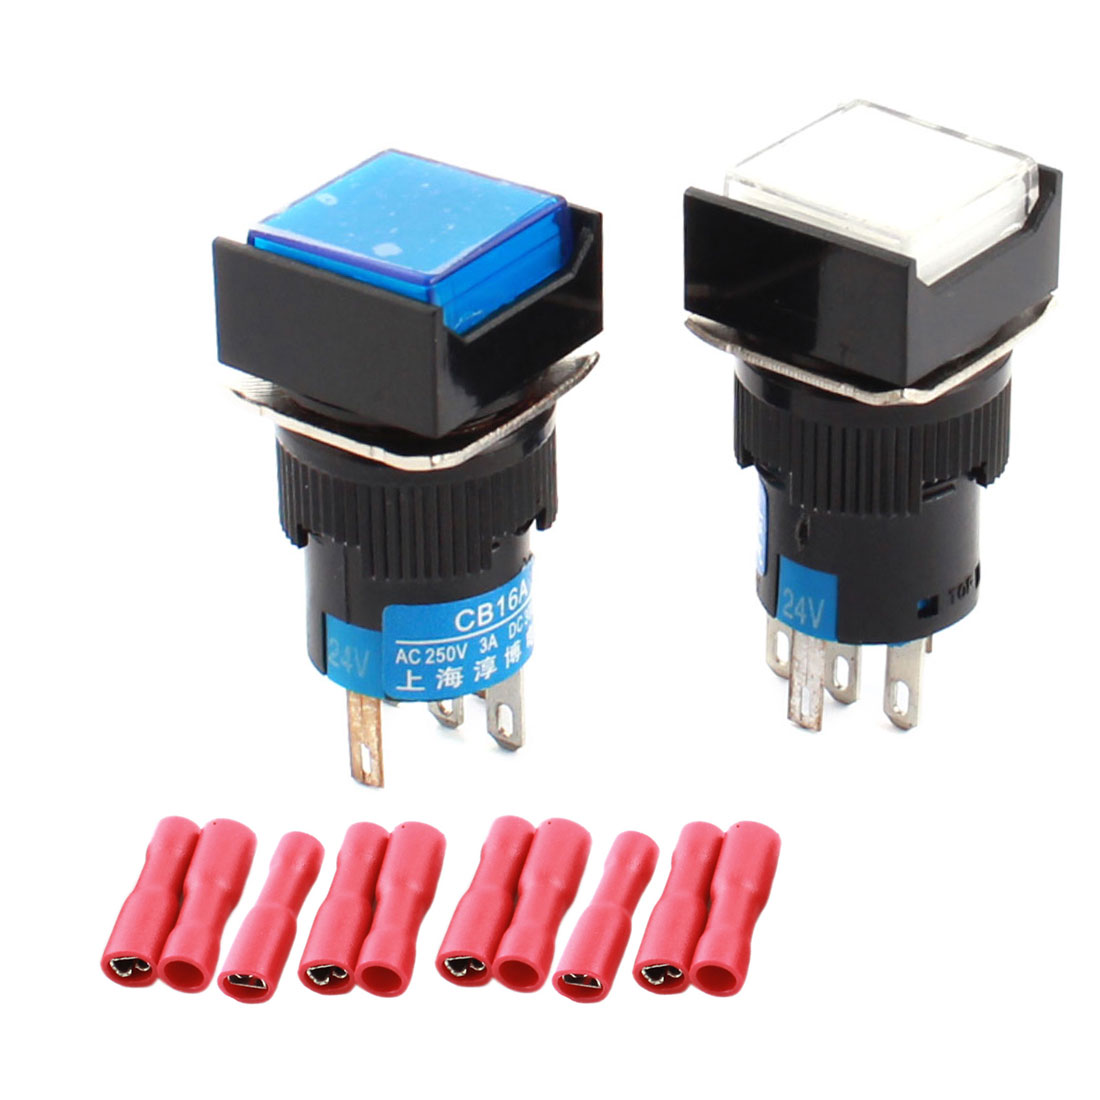 2Pcs DC24V Blue White Pilot Light 16mm Thread Panel Mount SPDT 5Pins Momentary Square Pushbutton Switch w Crimp Termianls